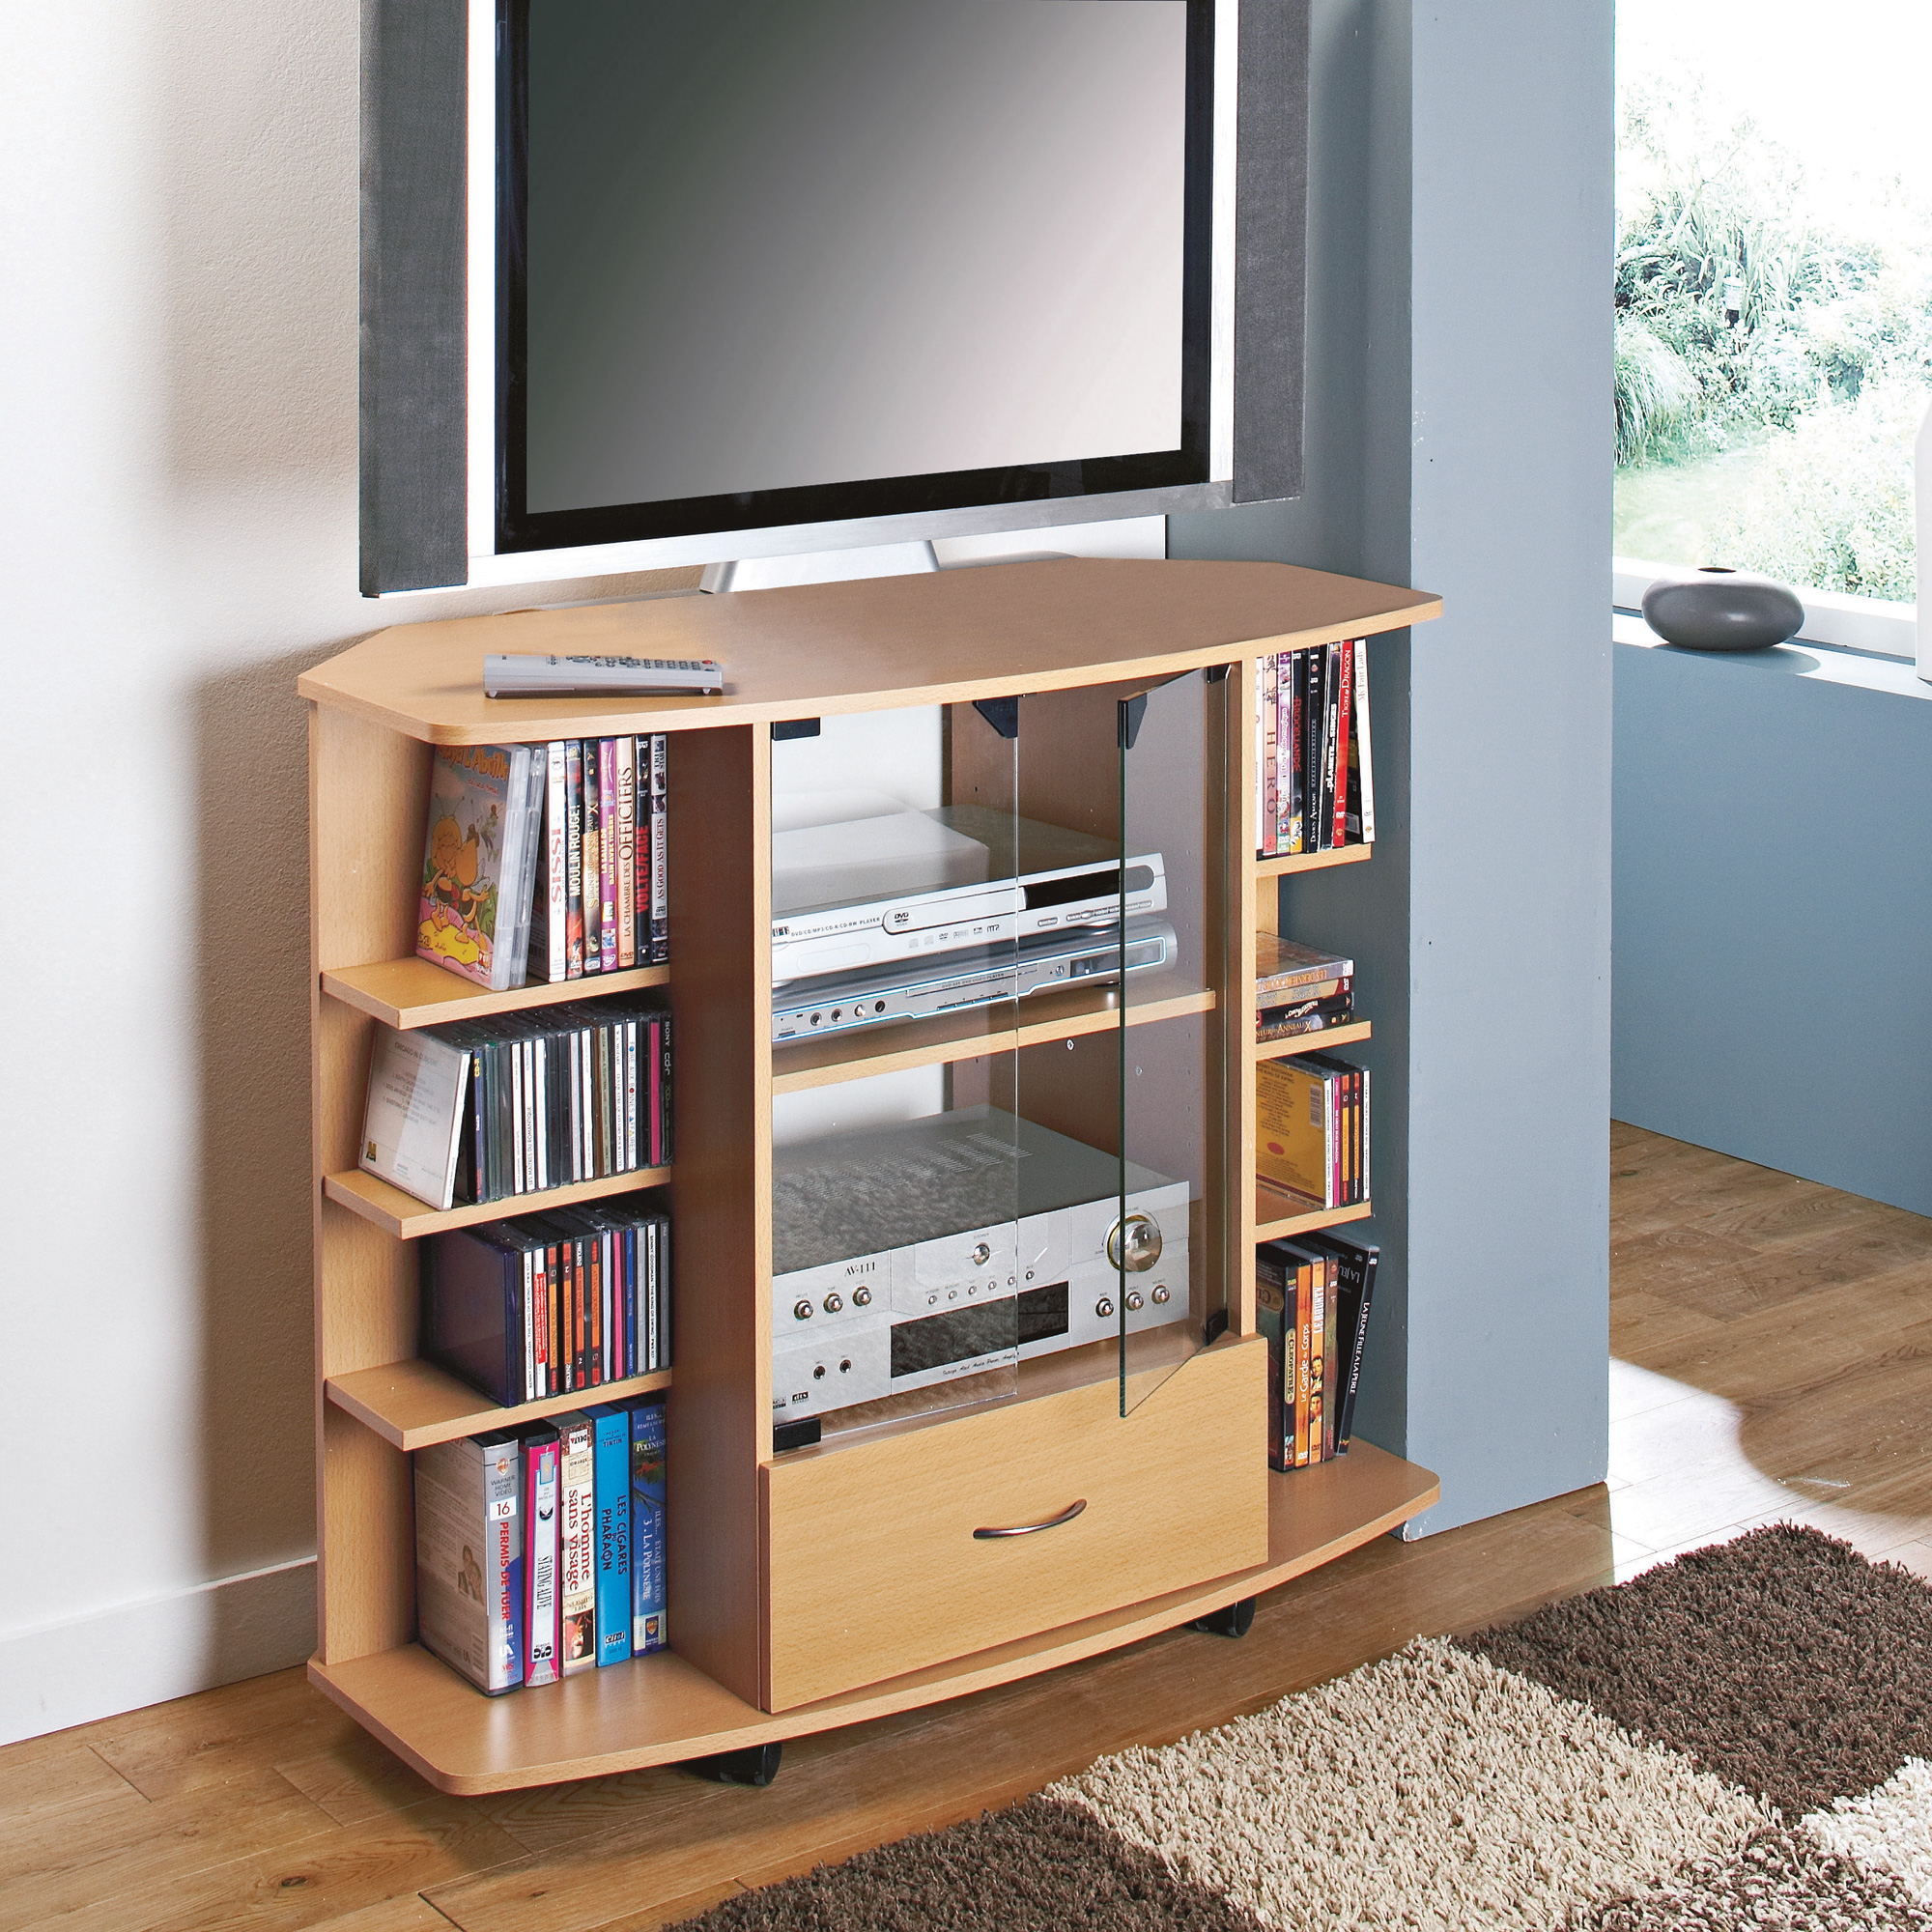 Meuble Chaine Hifi Rangement Cd - Meuble Tv D Angle Corner H Tre Frais De Traitement De Commande [mjhdah]http://welditinc.com/wp-content/uploads/2017/10/meuble-tv-rangement-dvd-11-avec-ikea-toulouse-artzein-com-et-meubles-mural-paul-range-tm-hifi-07081050-la-decoration-o-cable-cd-conforama-design-969-cables.jpg